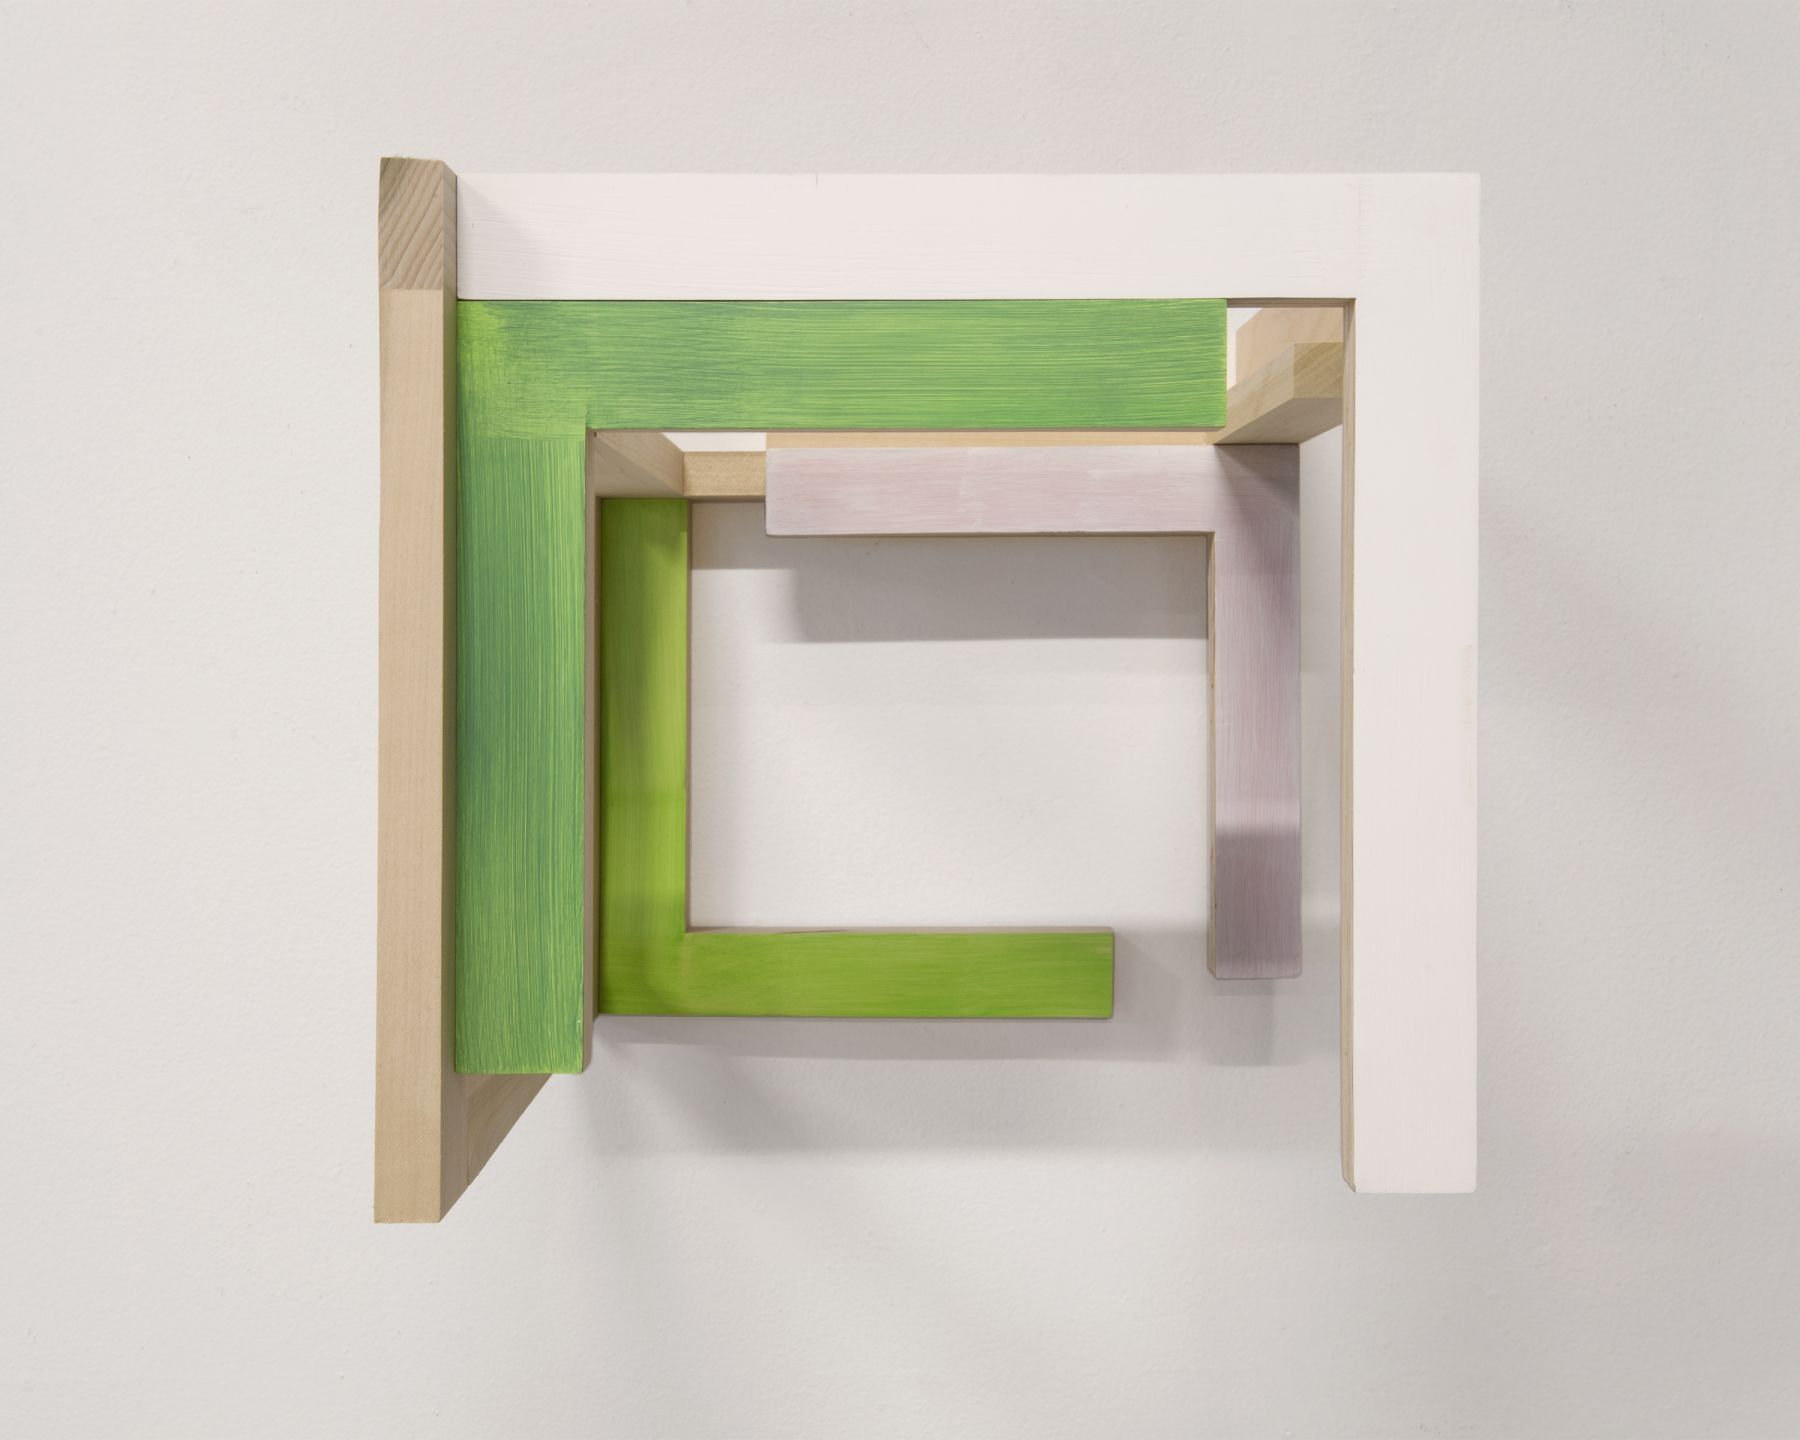 "James Woodfill ""Training Model: Wall Model #3"", birch plywood, poplar, maple with acrylic and gesso, wall mounted, 15"" x 15"" x 15"", 2019, an open wooden wall sculpture, open on the bottom with natural, green, green-yellow, white and pinkish-grey"